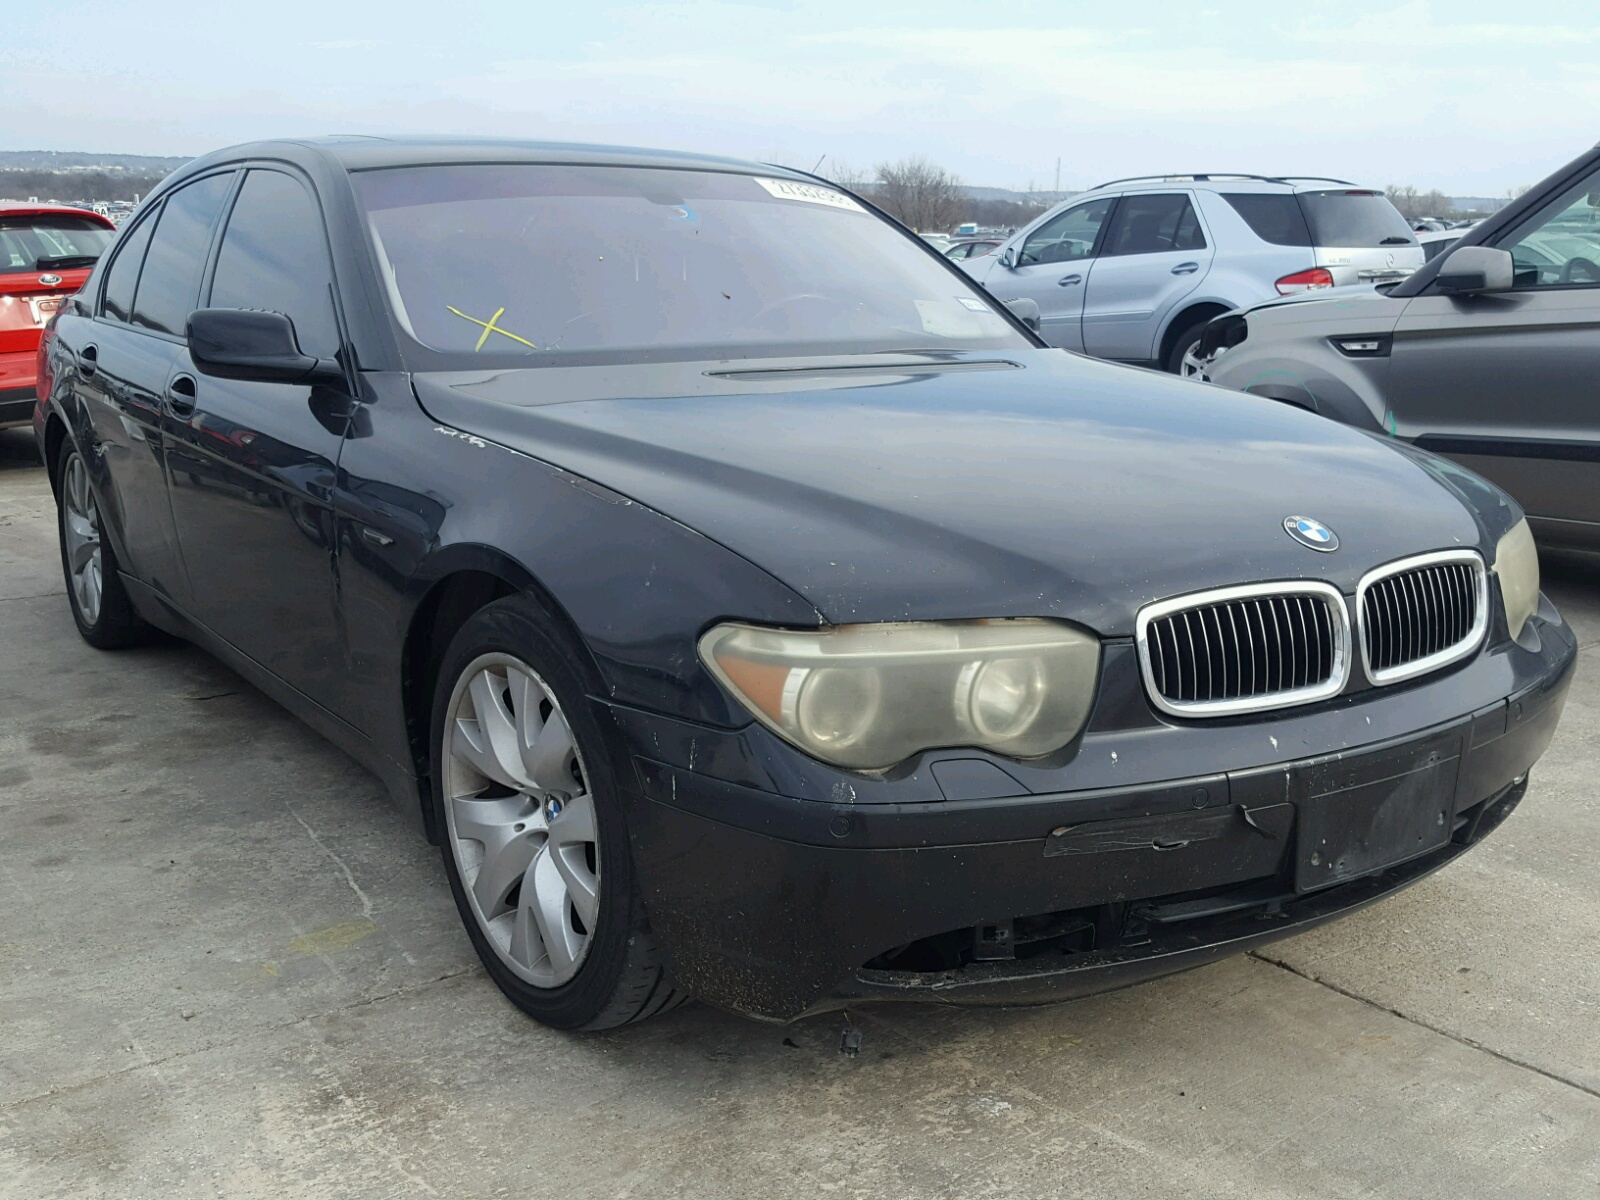 Auto Auction Ended On VIN WBAFZCCC BMW I In CA - 2012 bmw 745